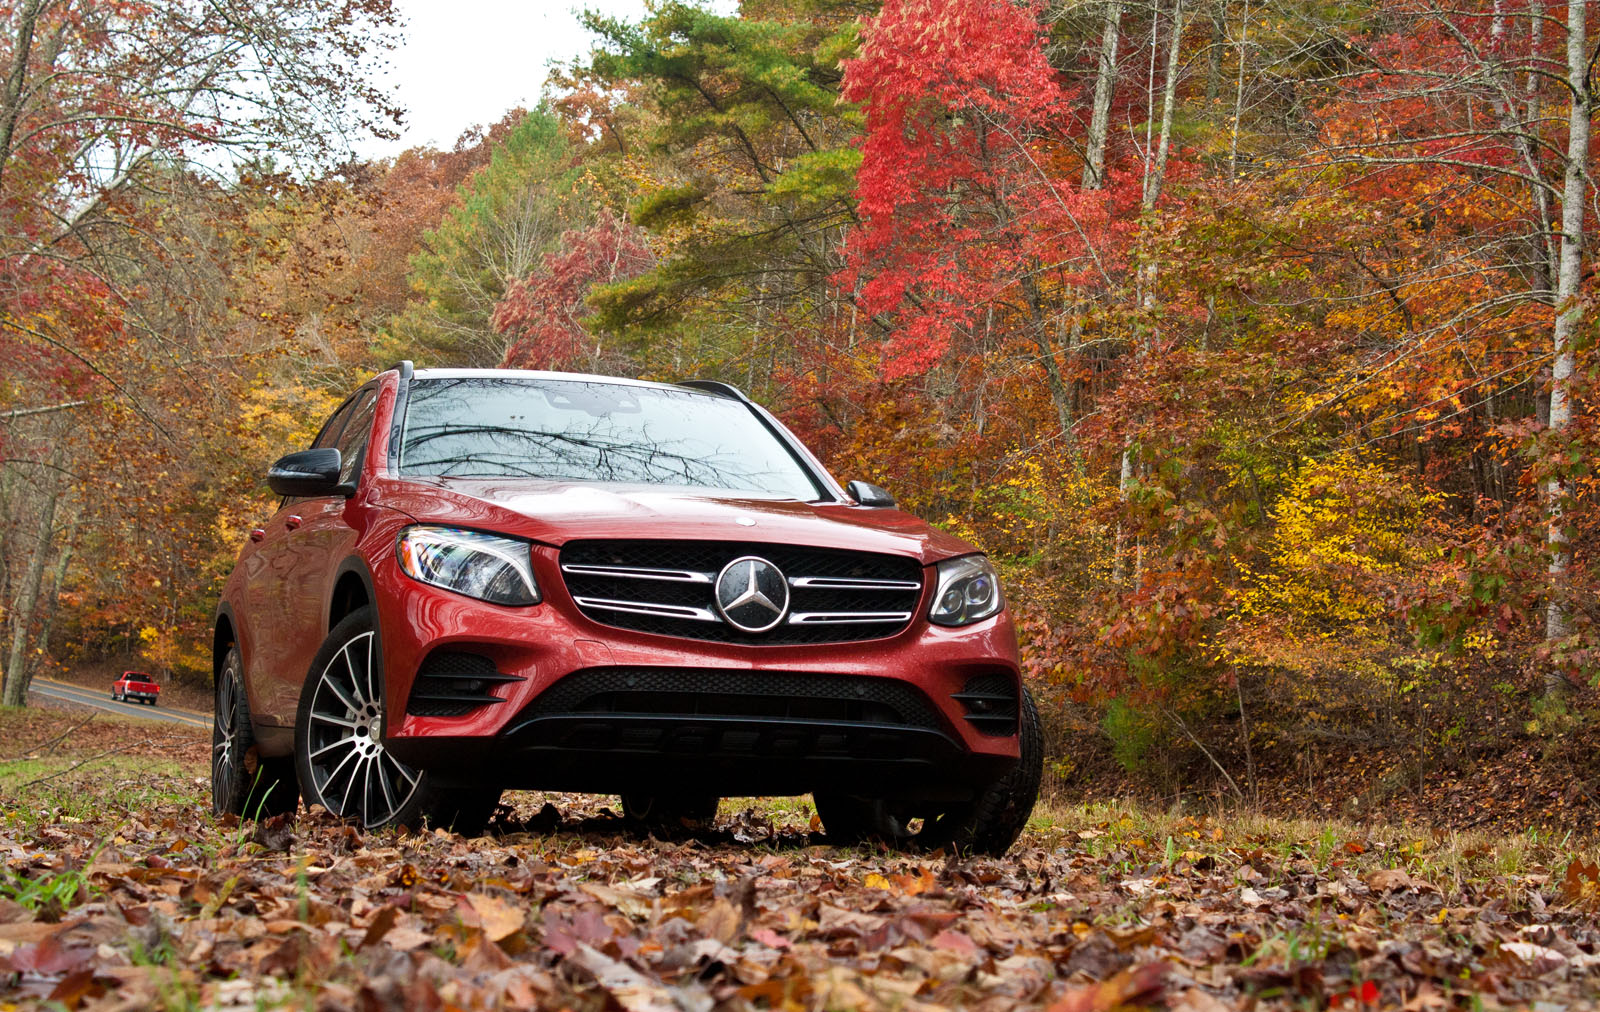 2016 mercedes benz glc 300 4matic review news for Mercedes benz 4matic meaning